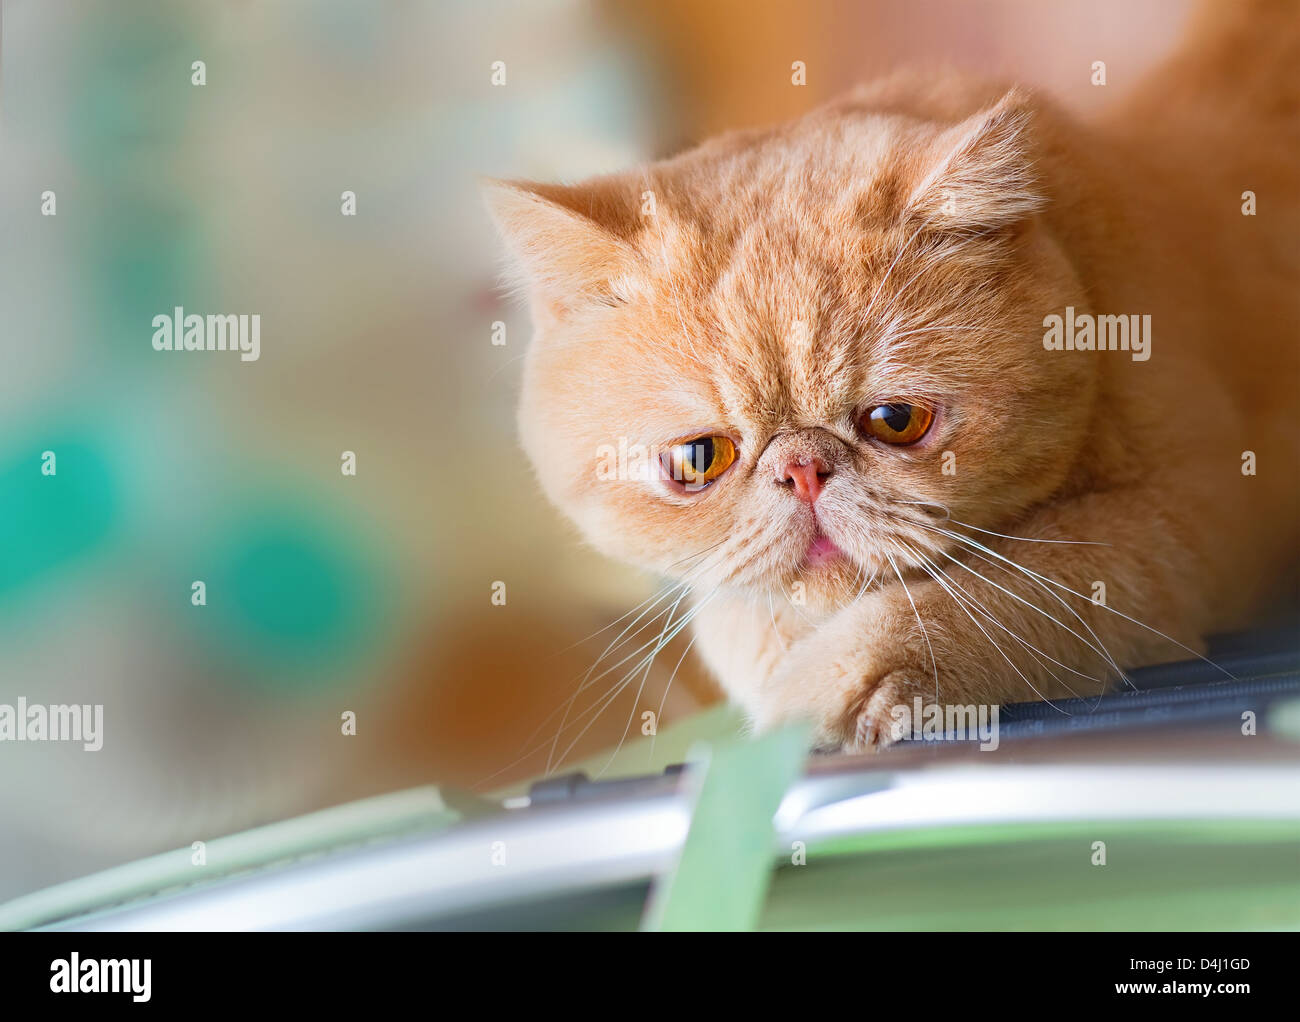 Garfield Cat High Resolution Stock Photography And Images Alamy